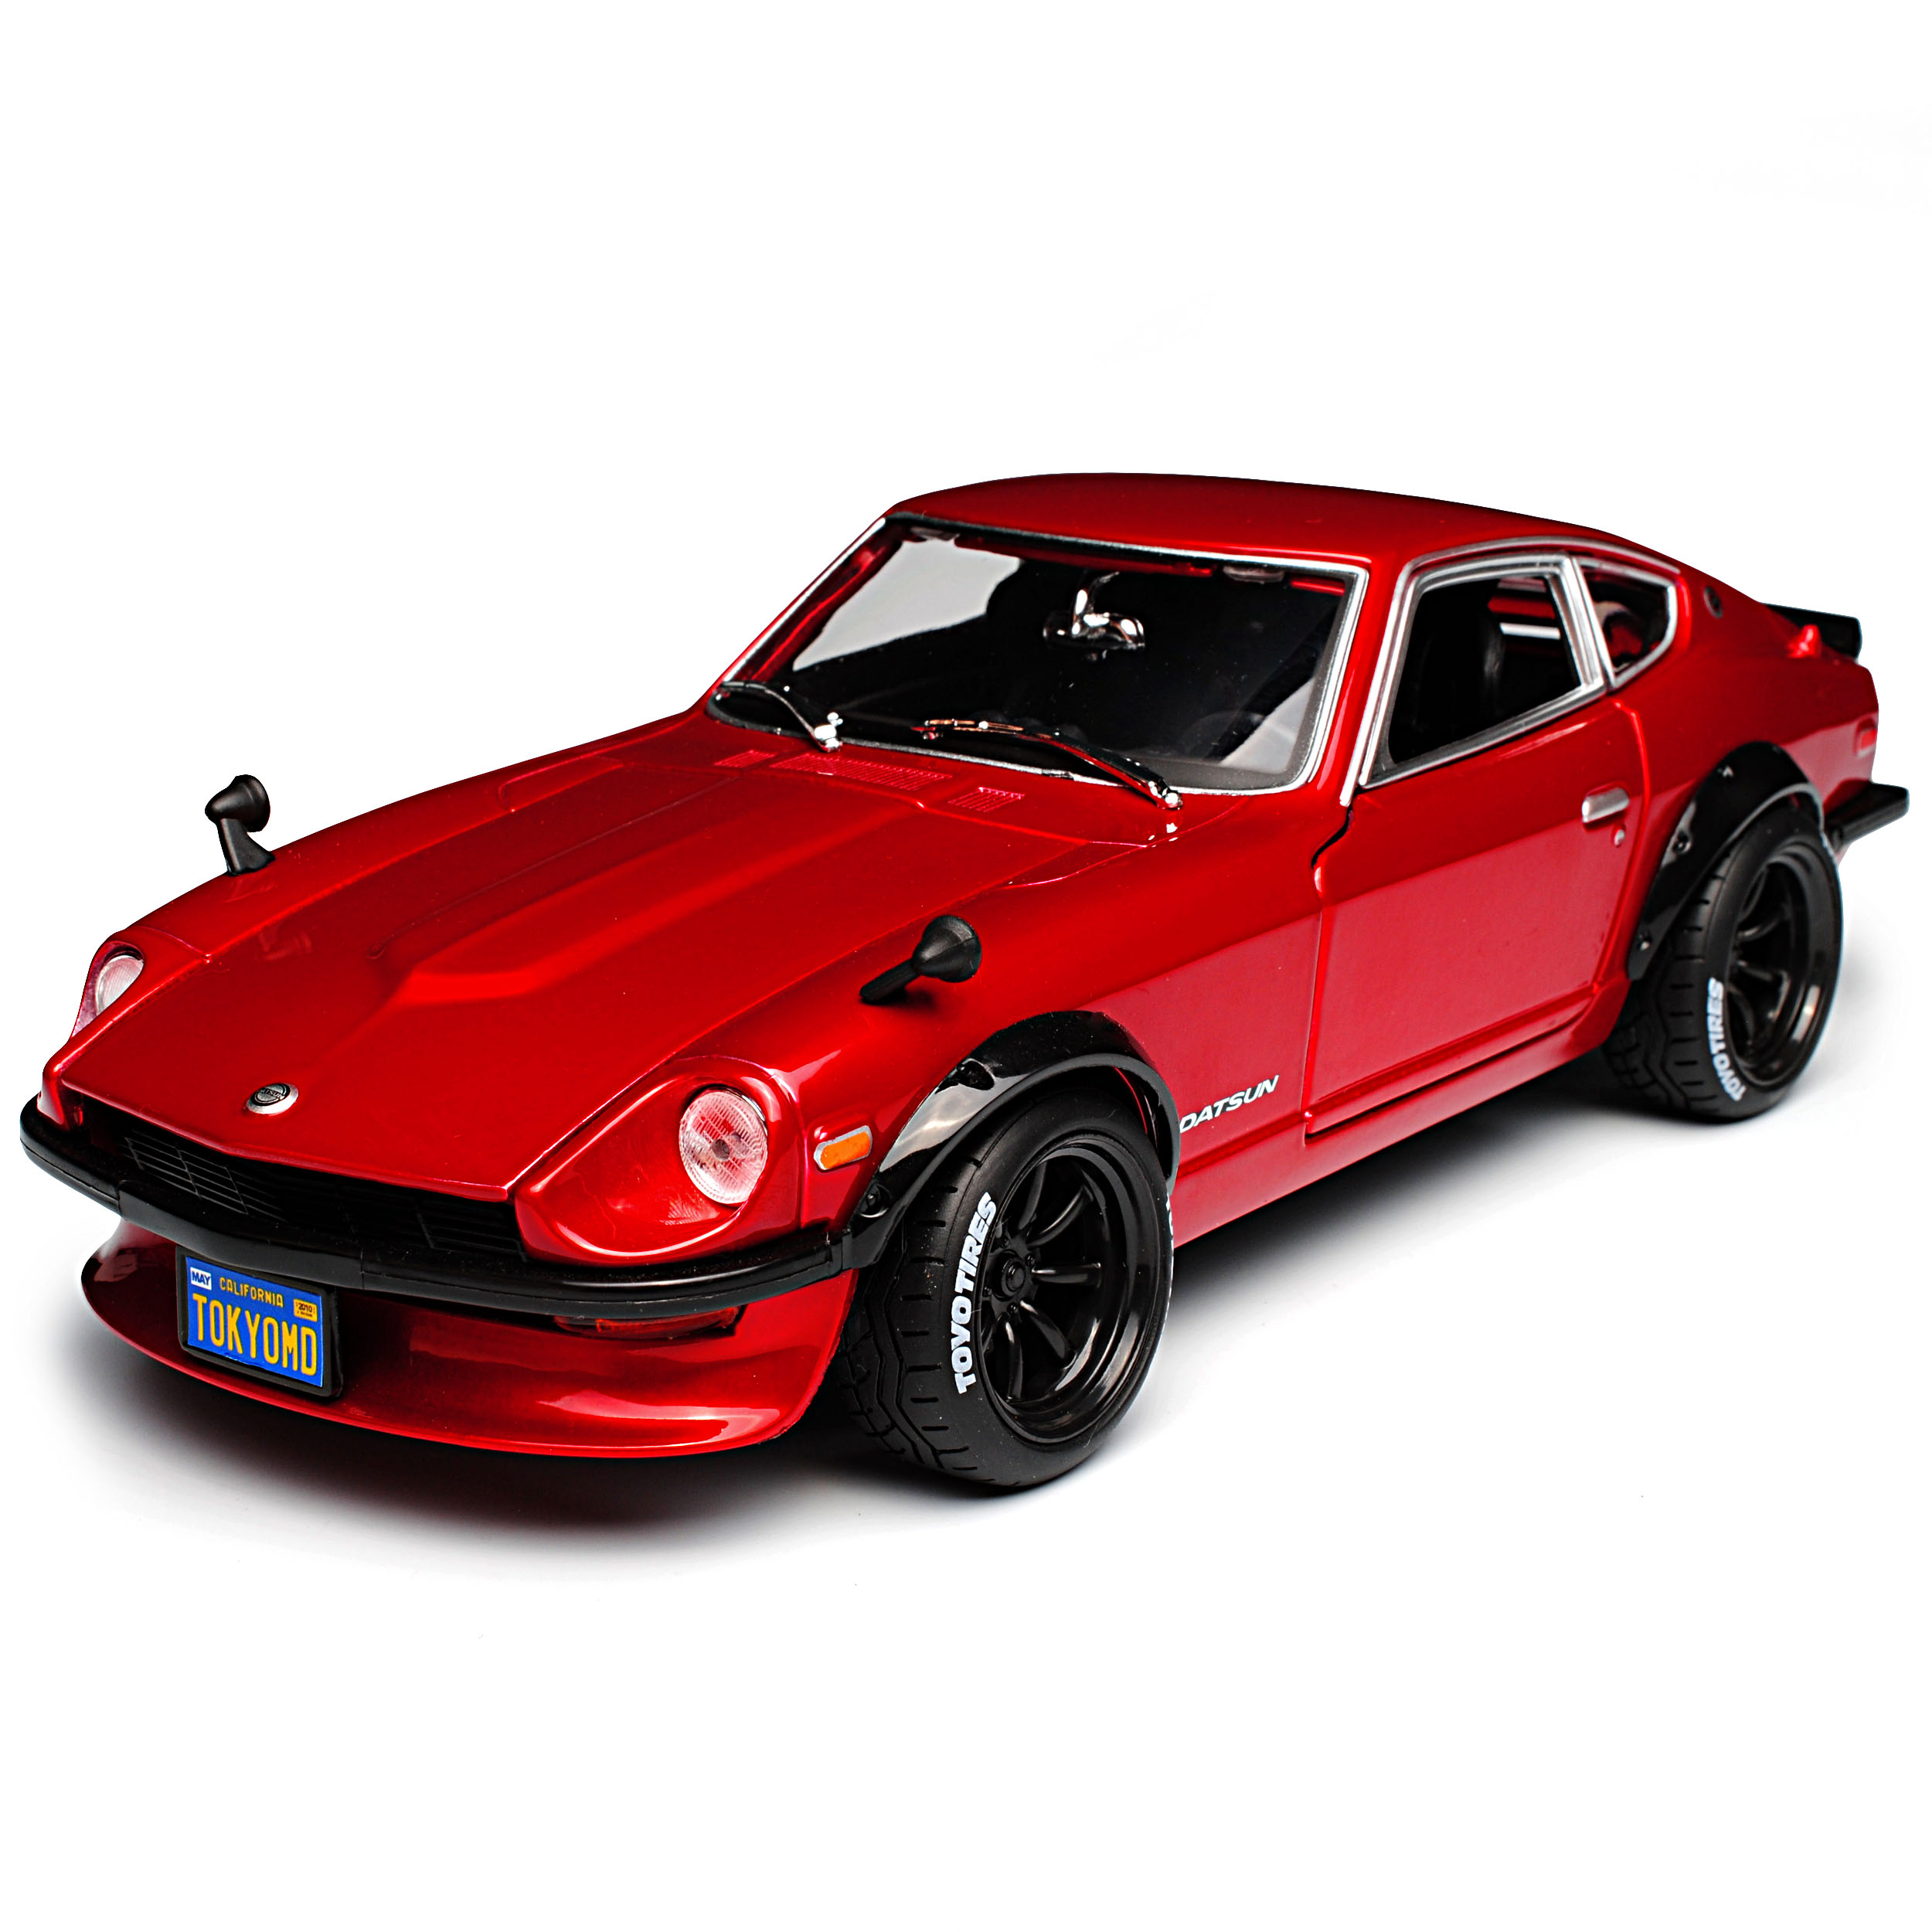 datsun nissan 240z fairlady z coupe tuning rot 1969 1978 1. Black Bedroom Furniture Sets. Home Design Ideas